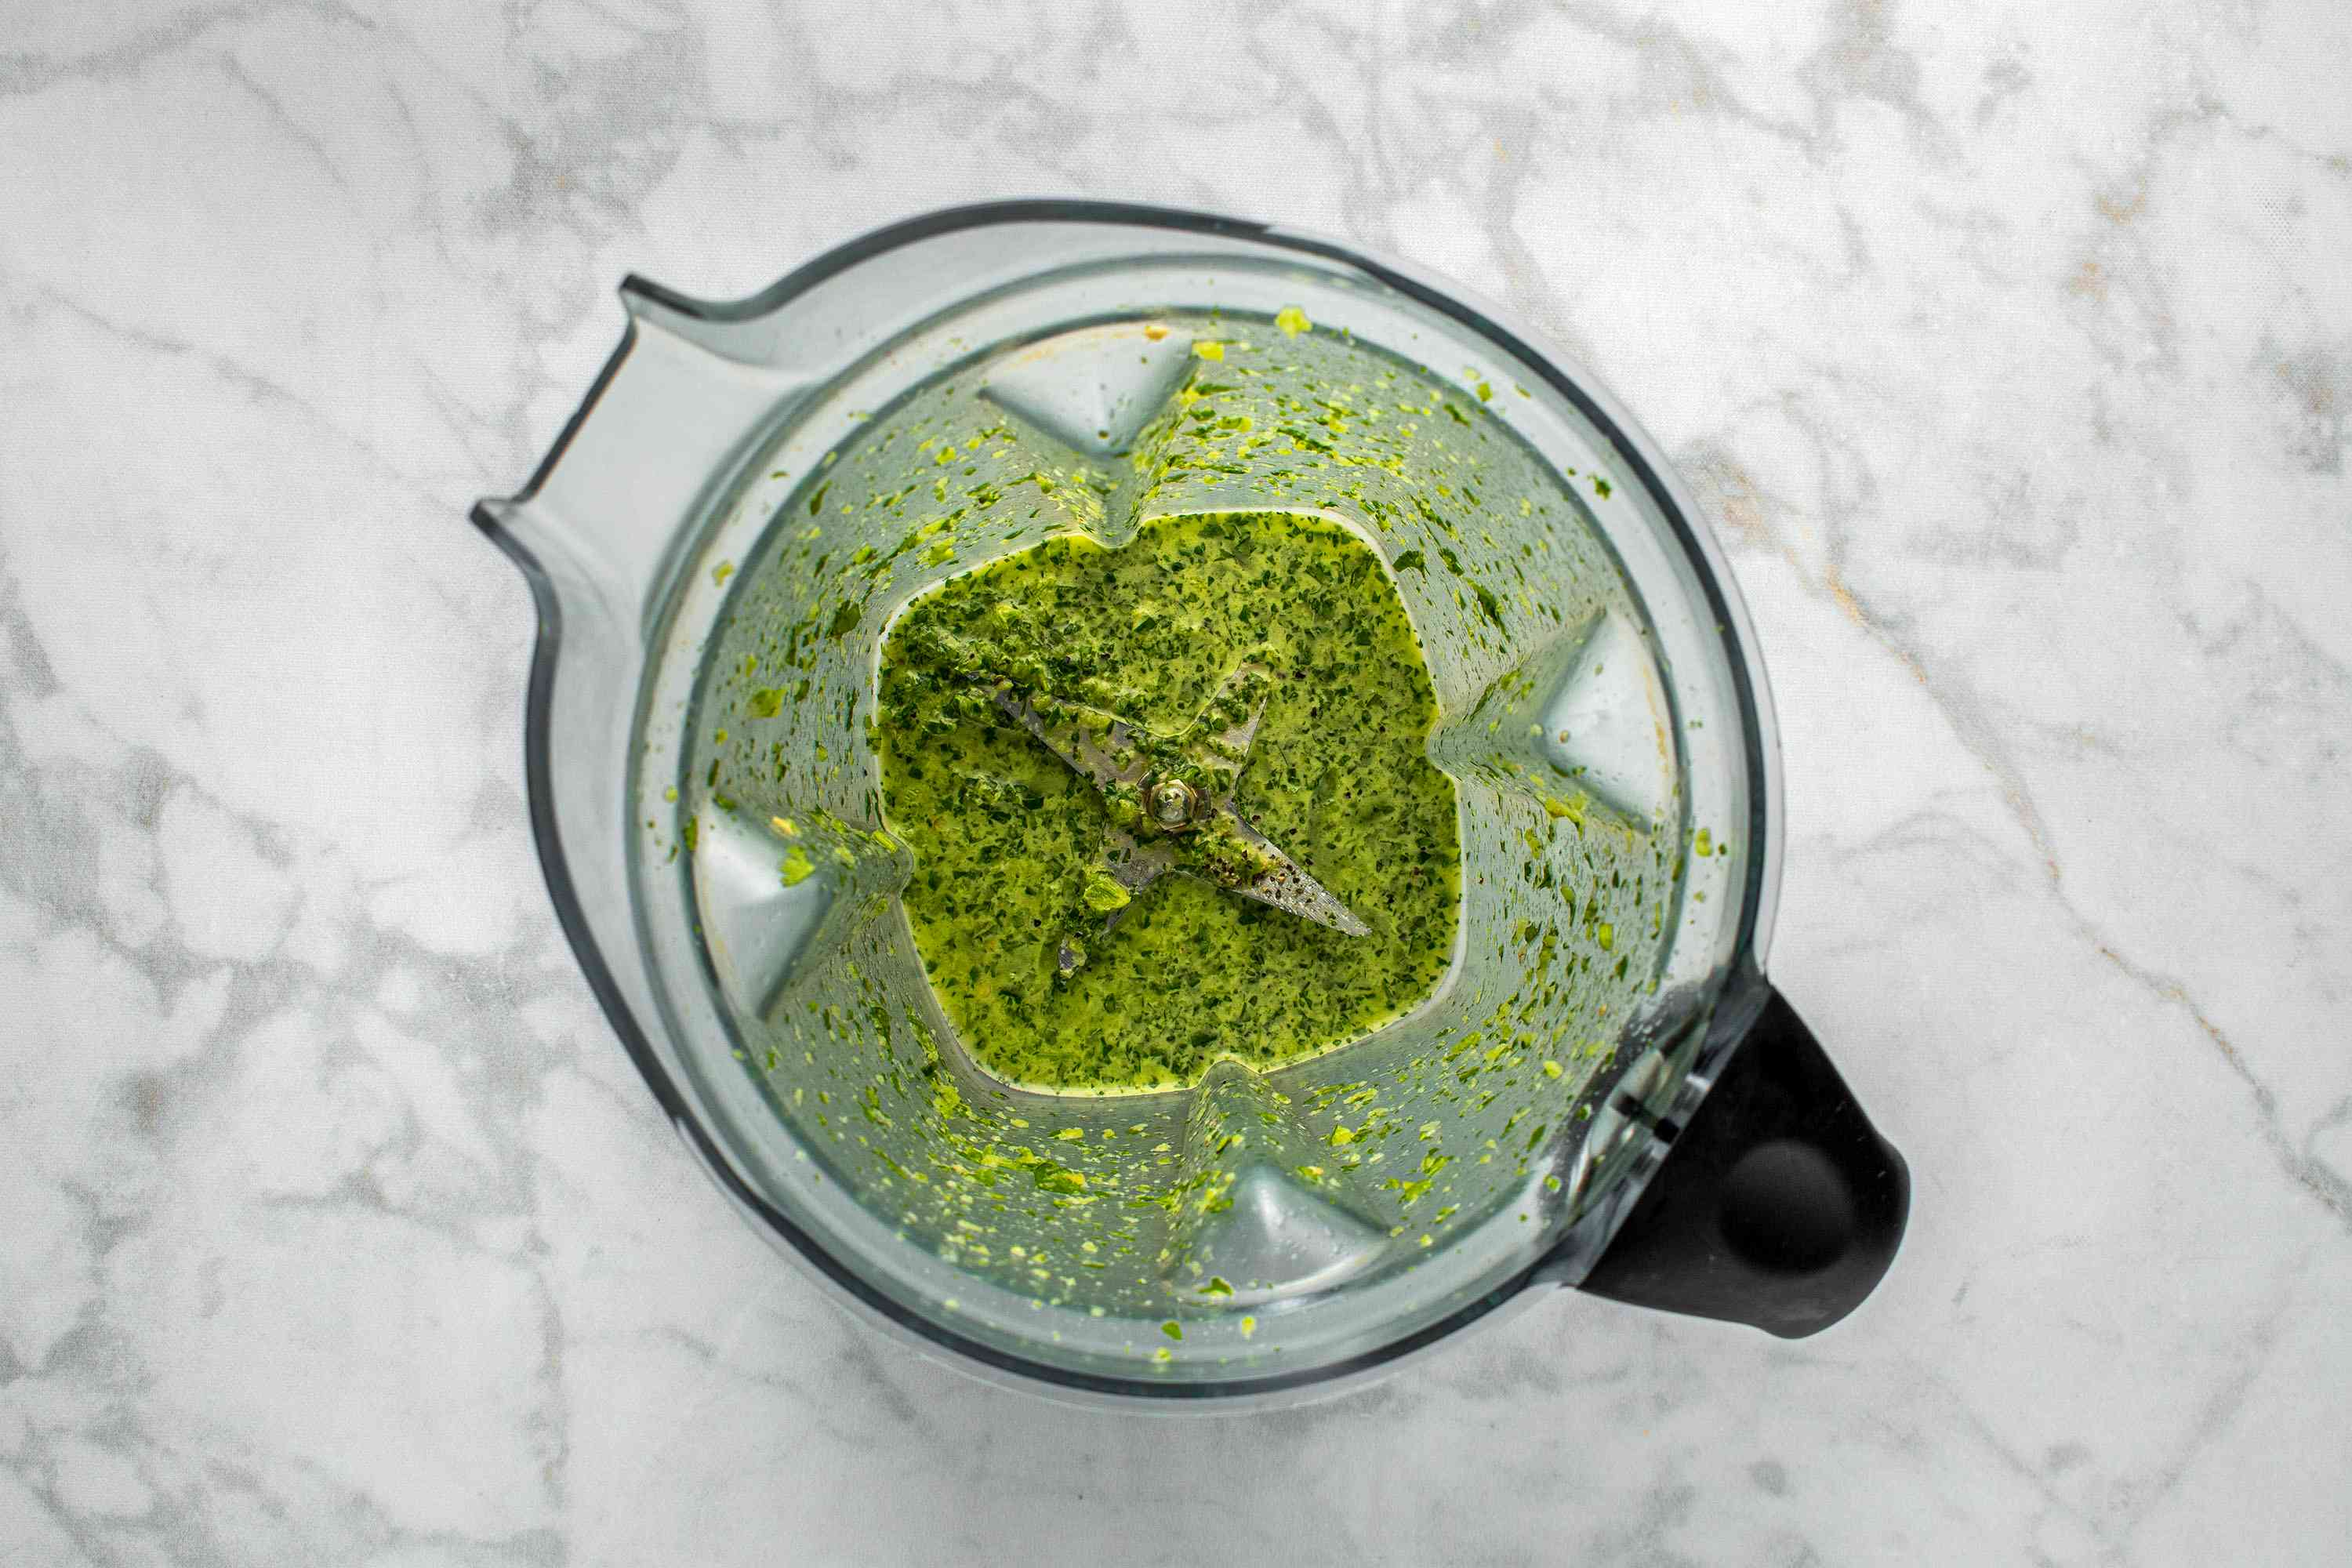 Combine water, cilantro, jalapeno, lime juice, and olive oil in a blender